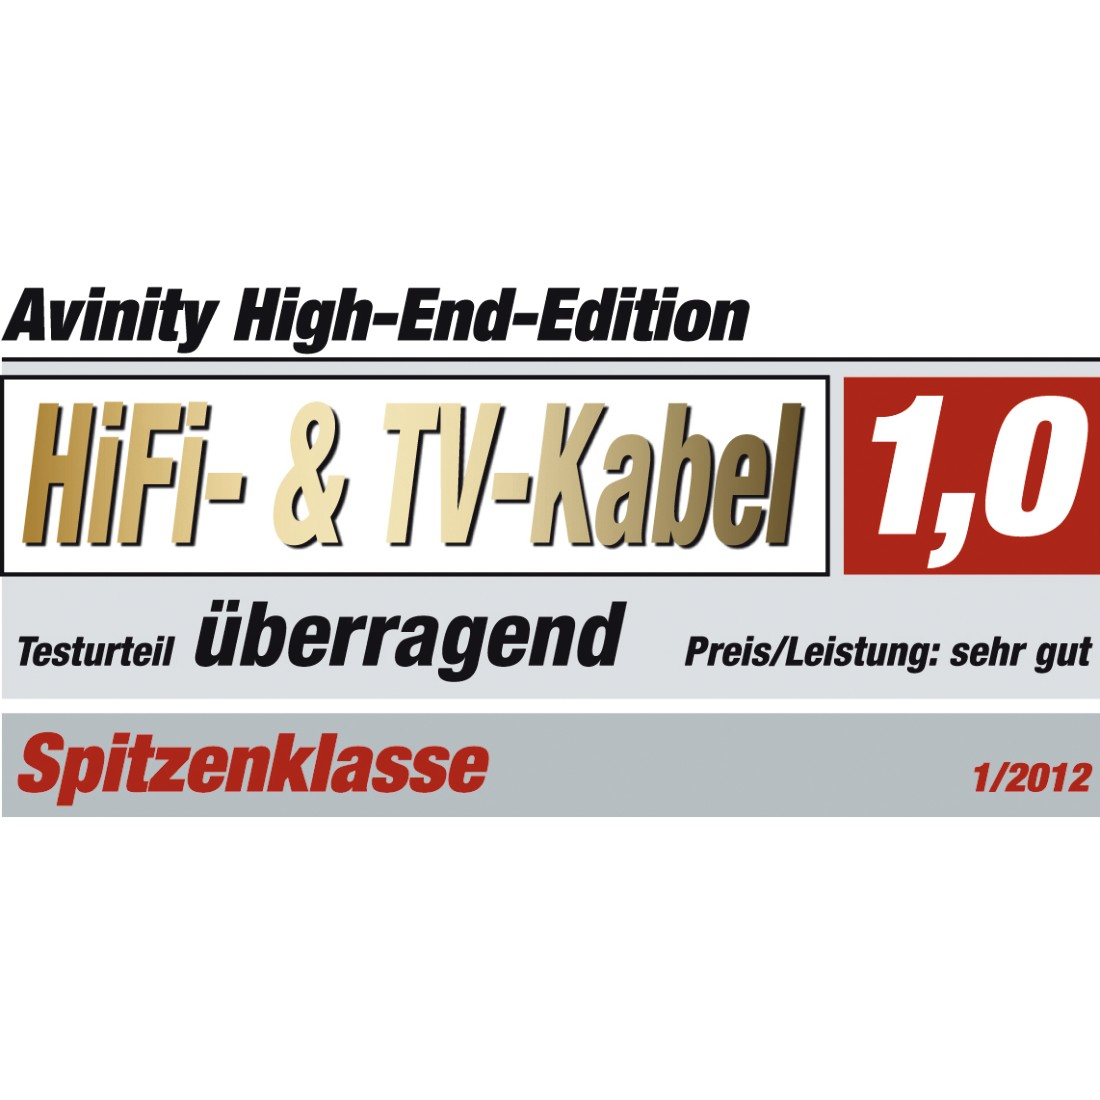 tex6 Druckfähiges Testurteil 6 - Avinity, High Speed HDMI™-Kabel, St. - St., Filter, oval, vergoldet, Ethernet, 1 m